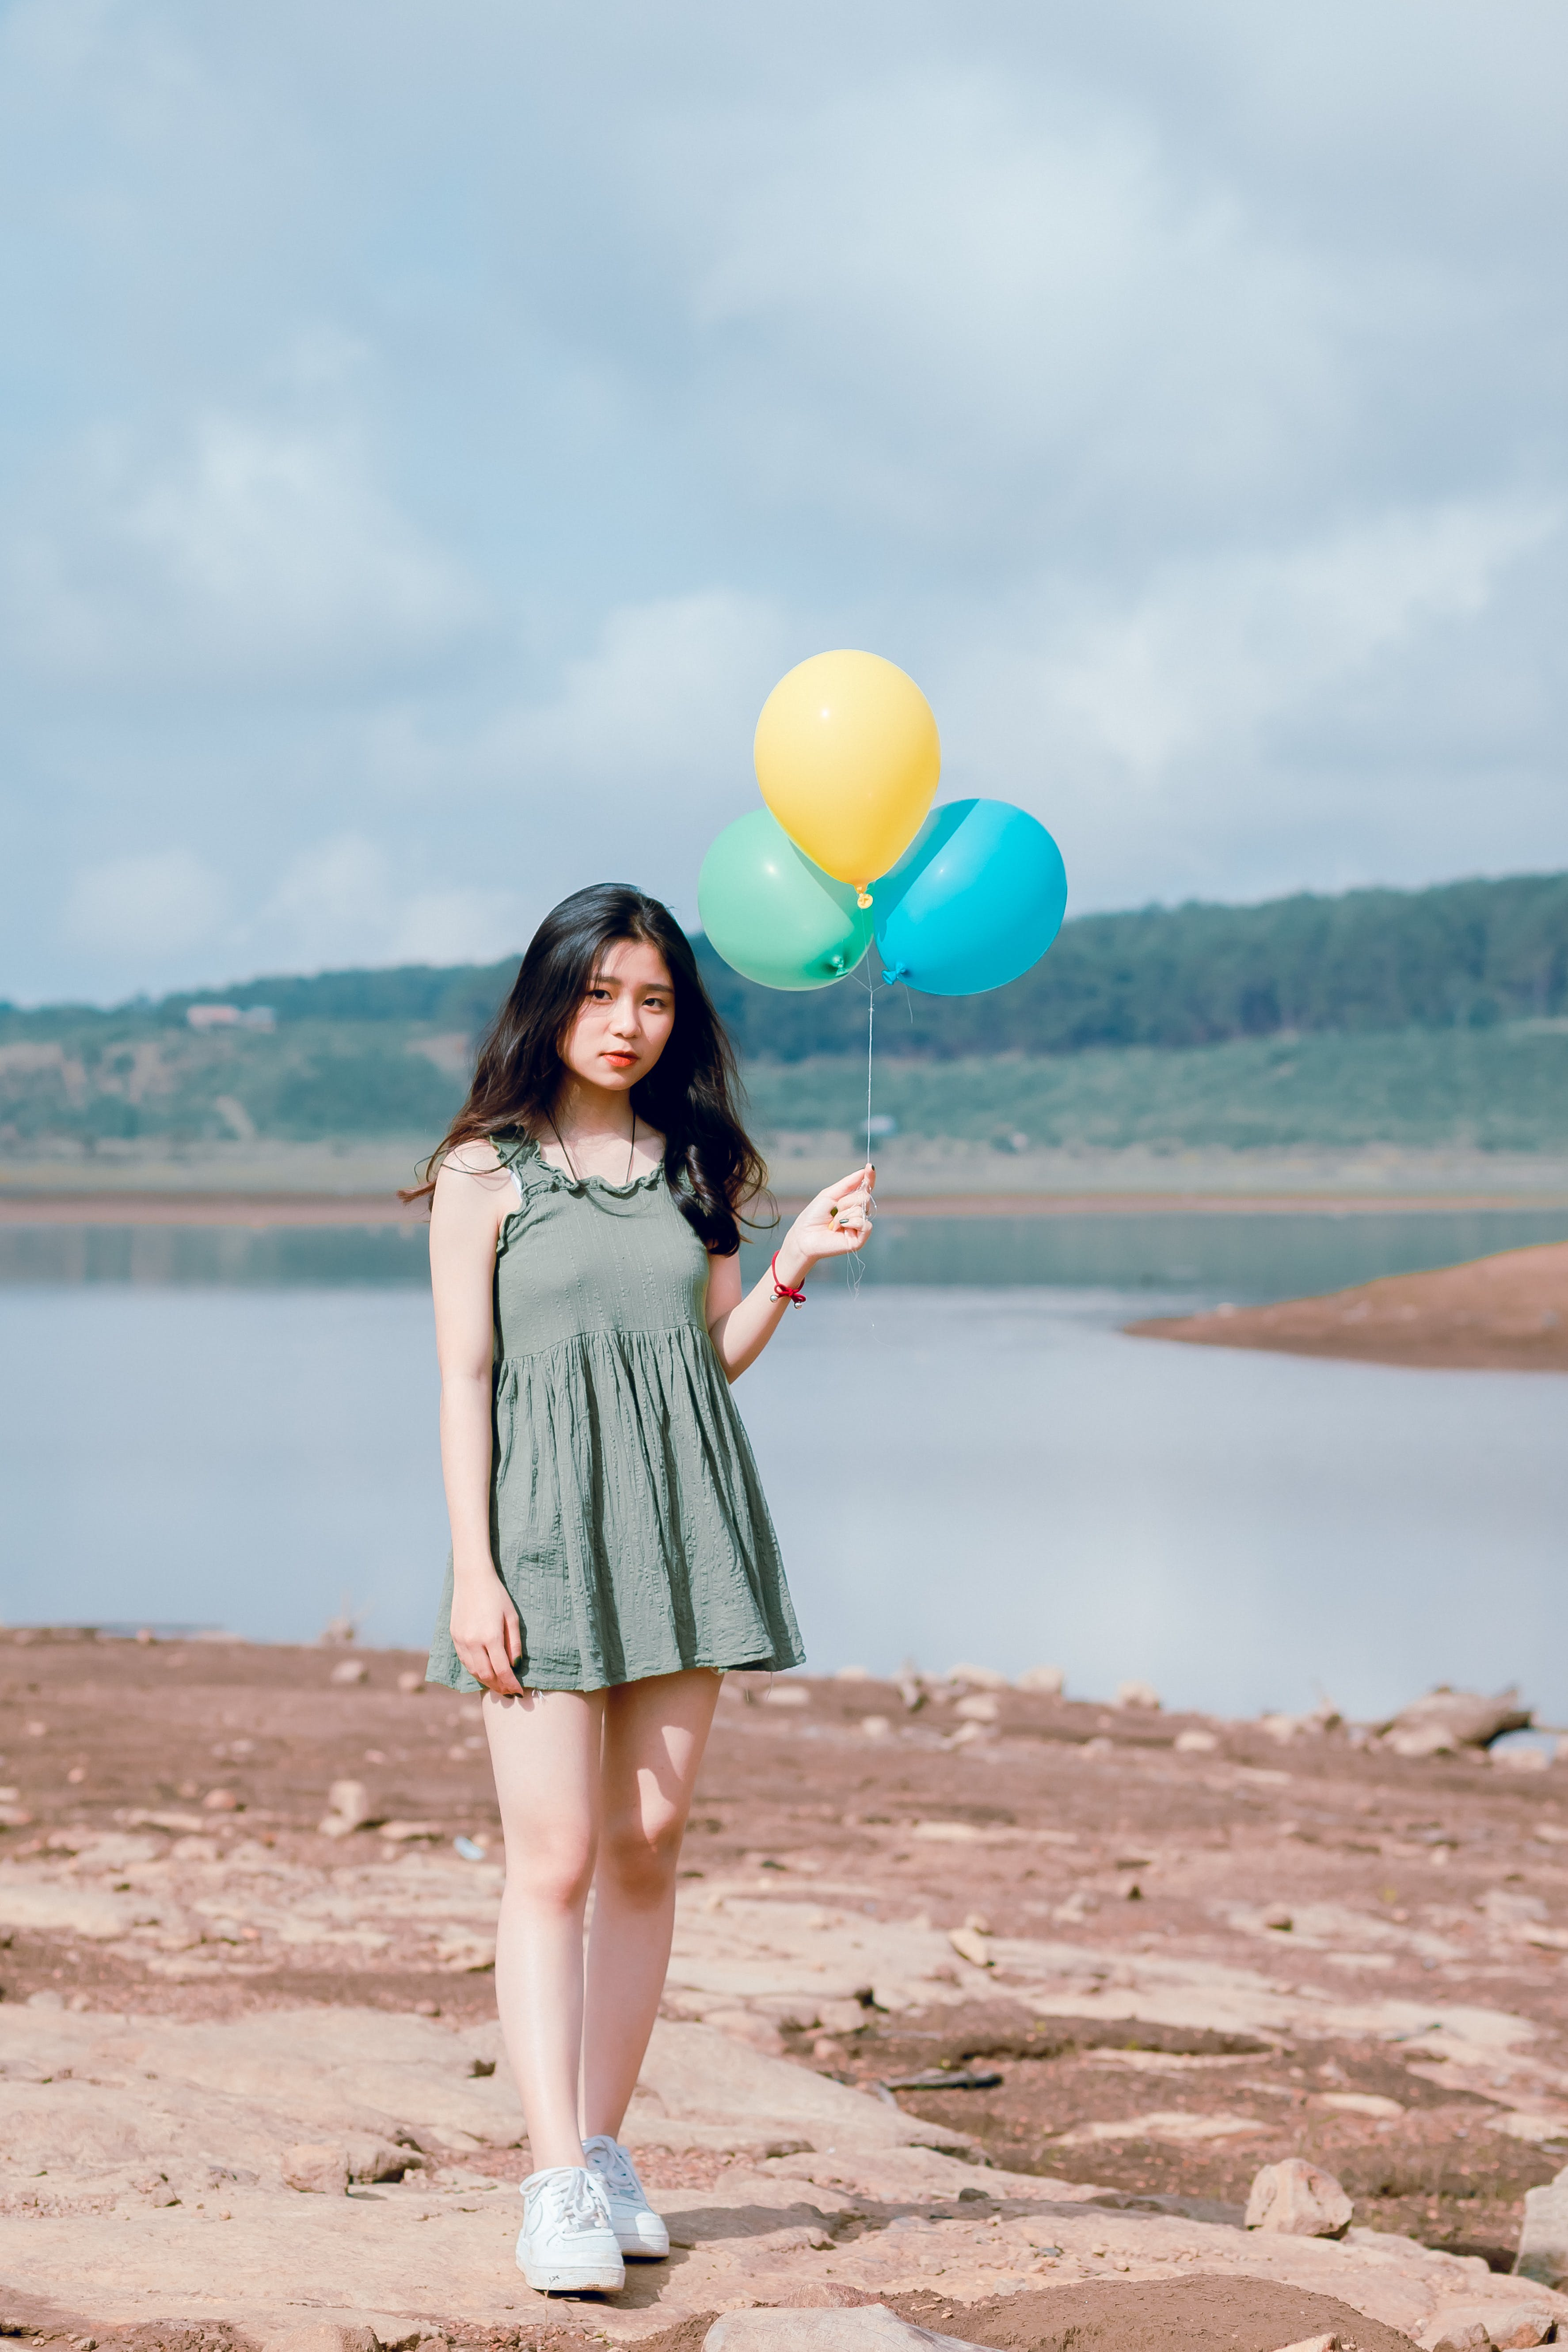 Woman's in Green Sleeveless Dress Holding 3 Balloons